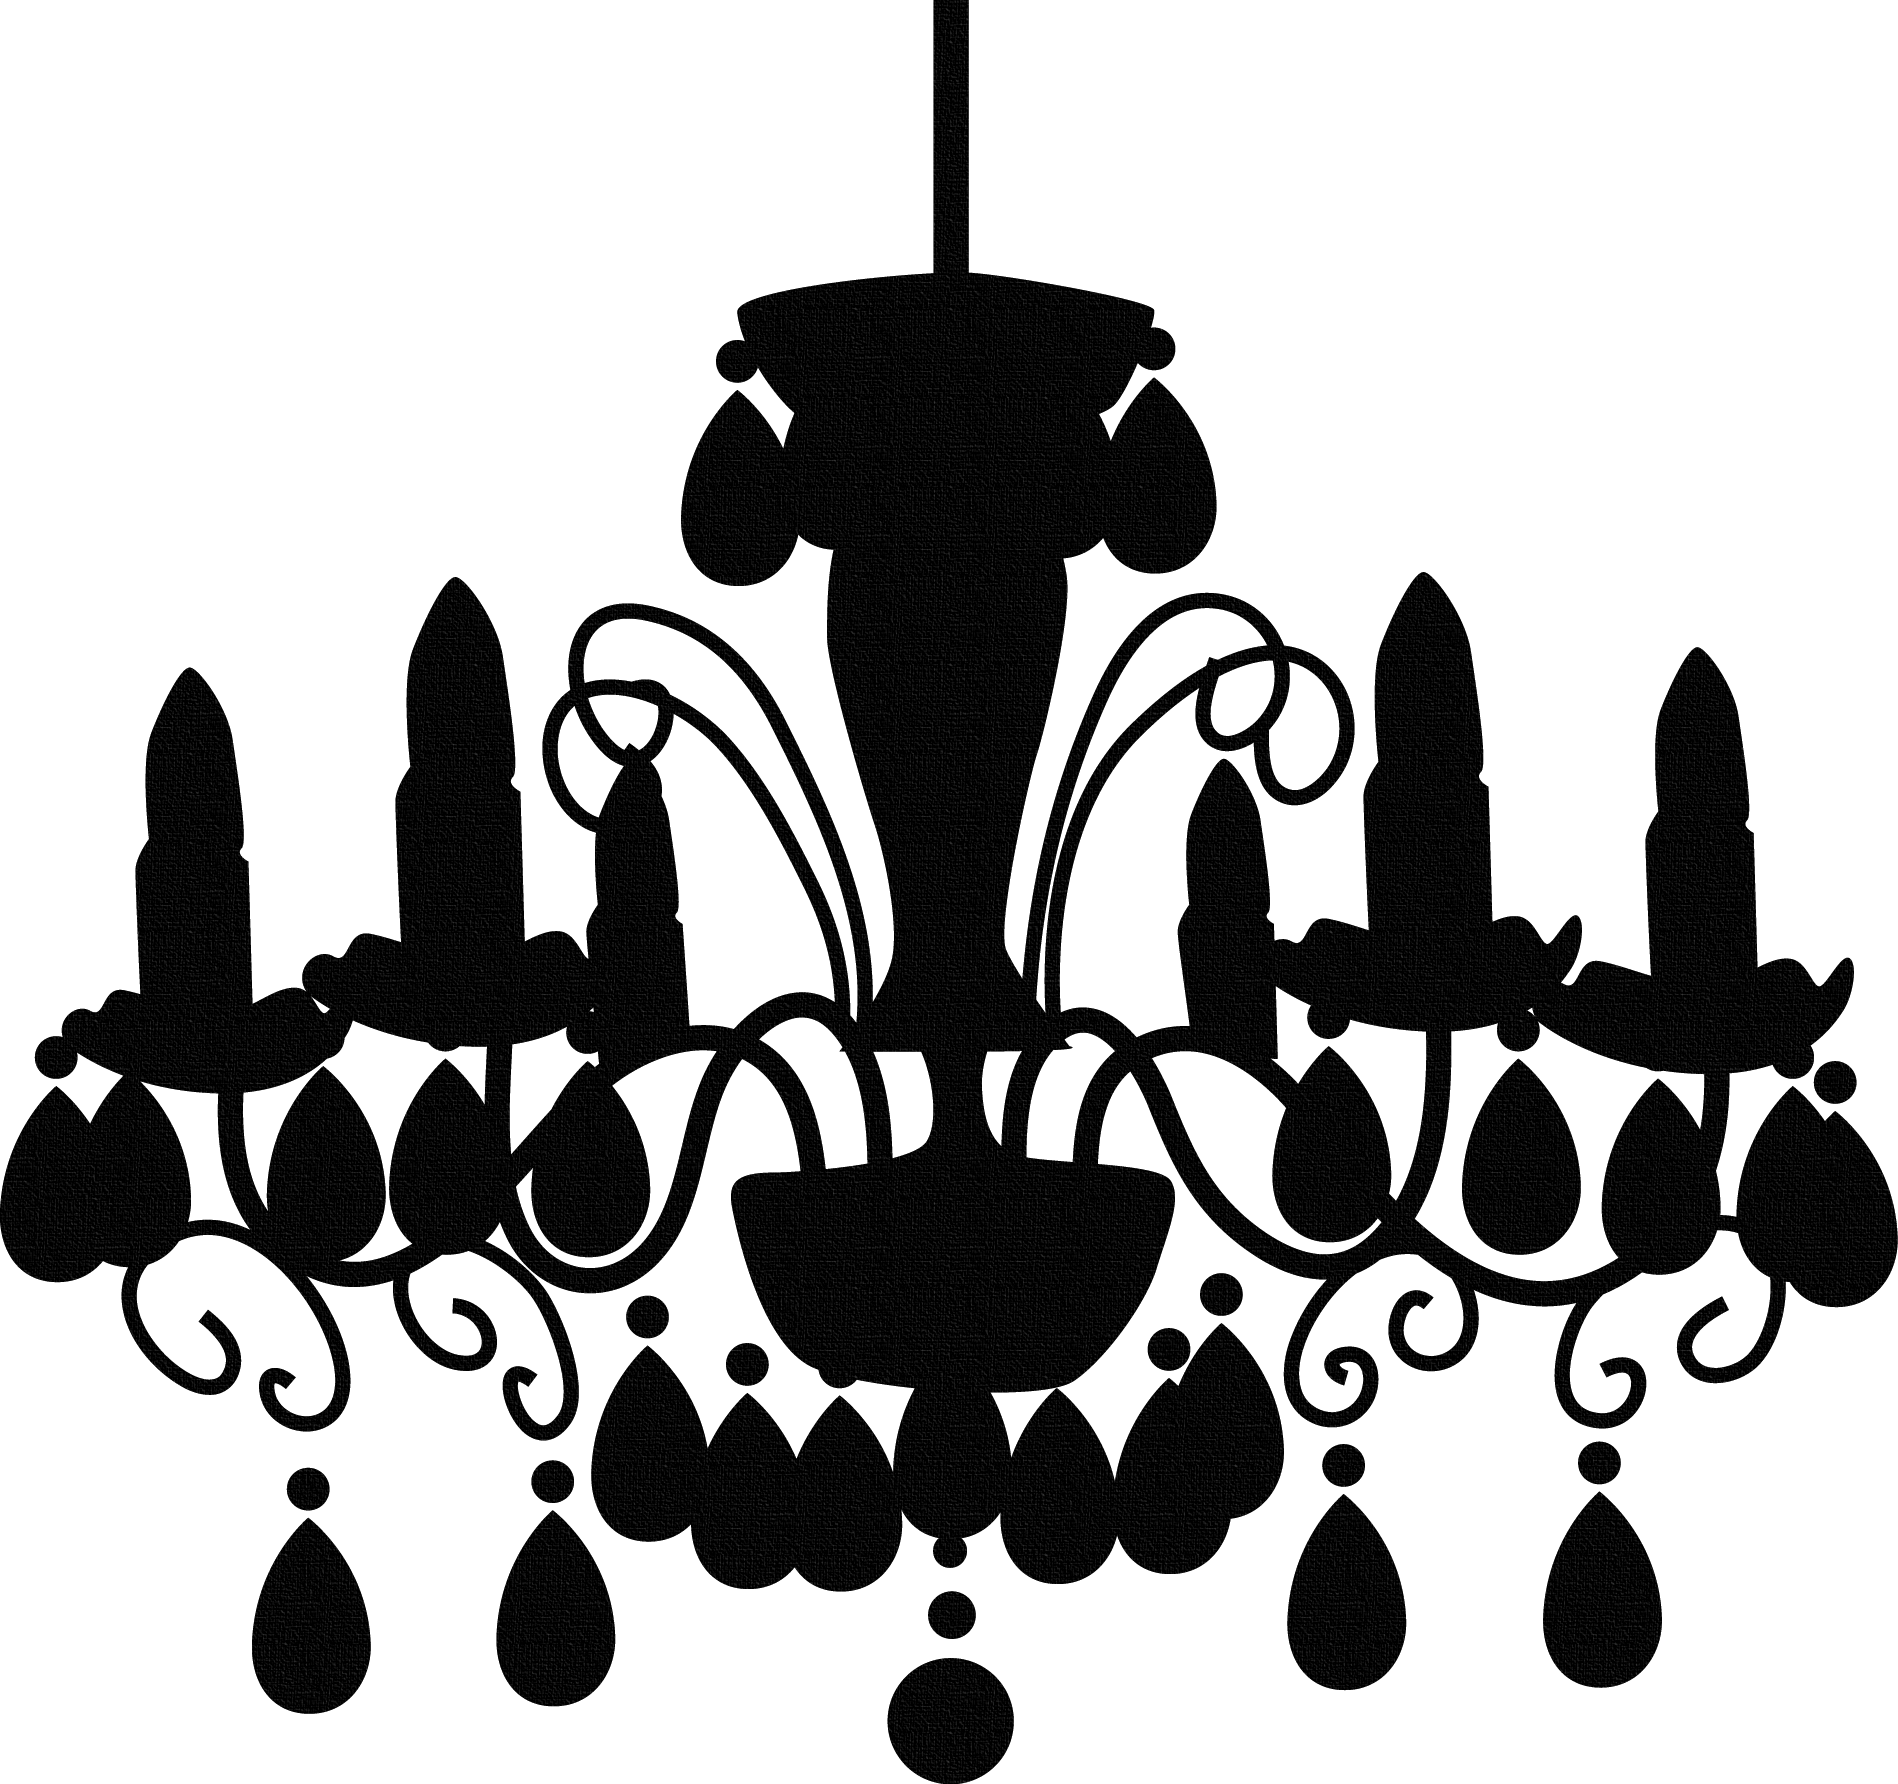 Halloween chandelier clipart clip art black and white library chandelier silhouette | Crucit-KITCHEN and House | Pinterest ... clip art black and white library